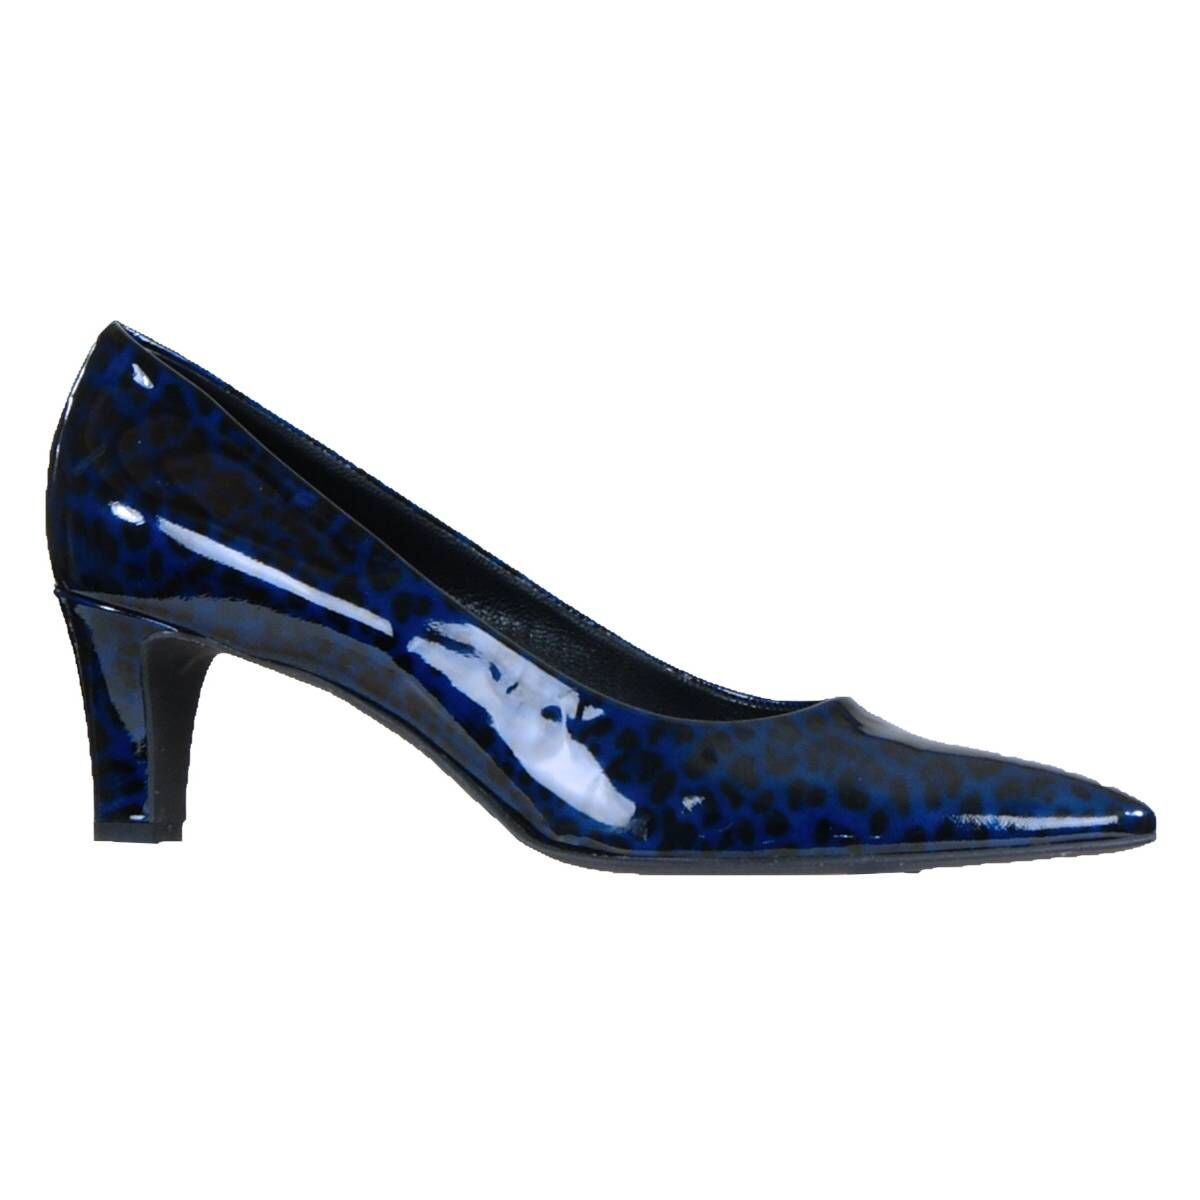 BLAUWE PANTERPRINT HIGH HEELS